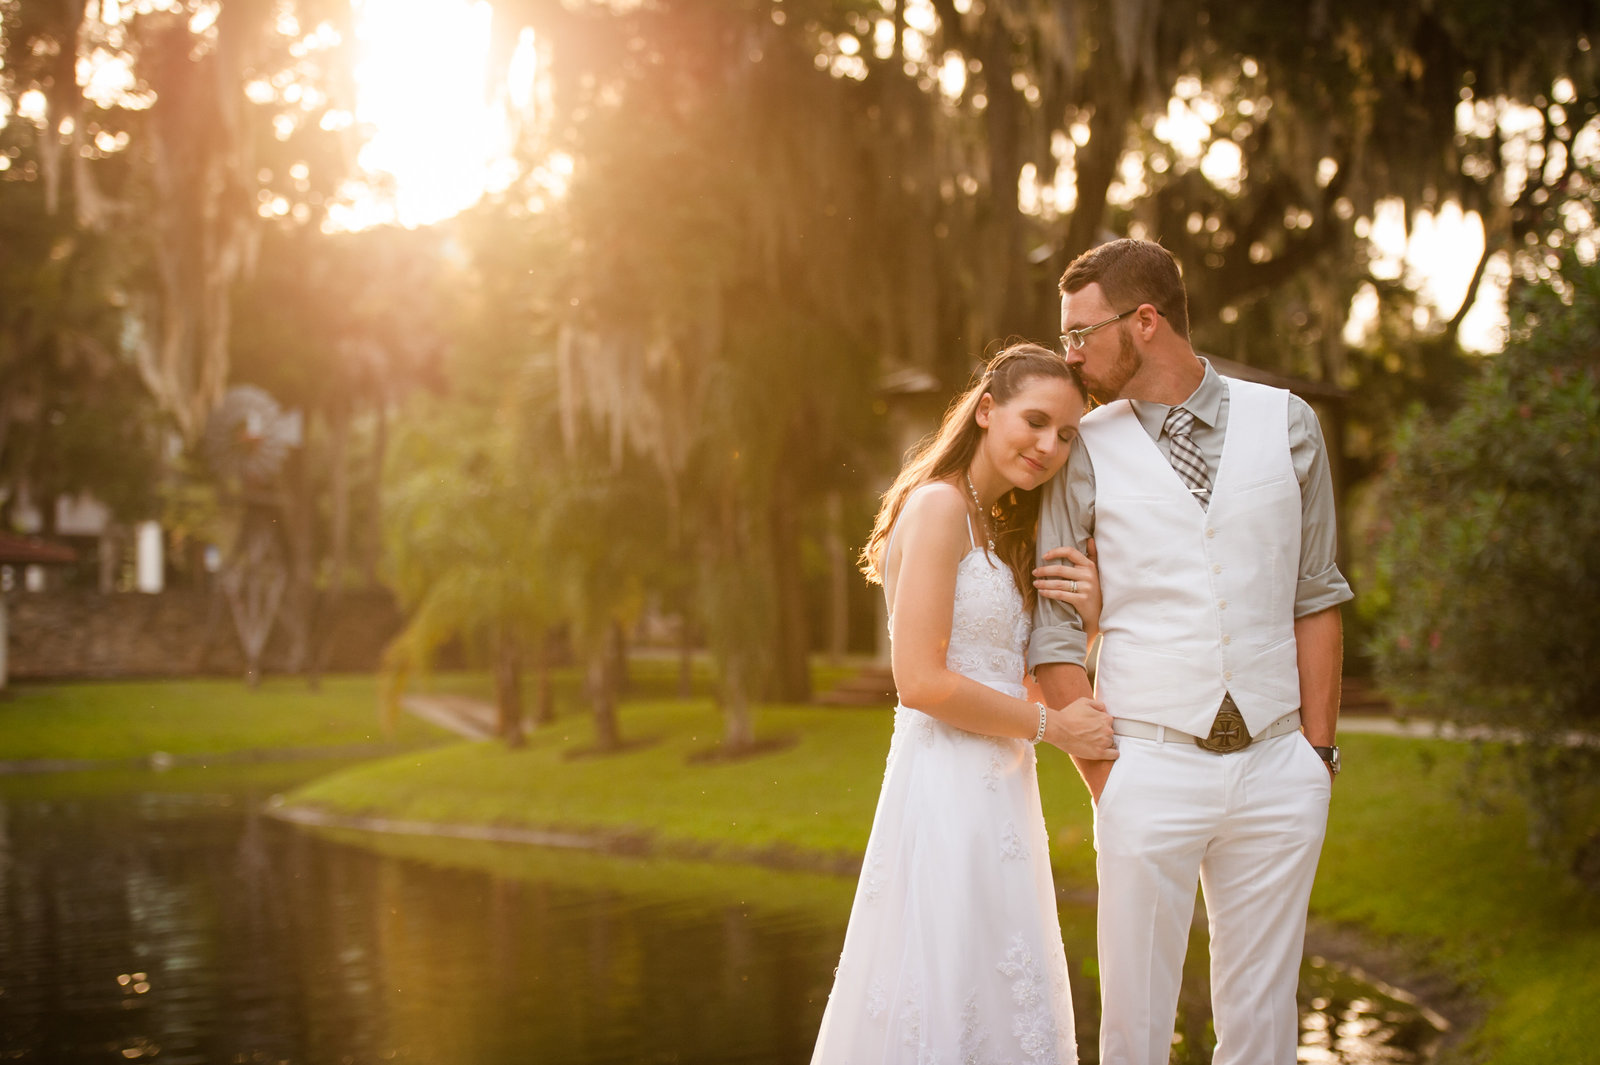 Daytona Beach elopement photography (2)